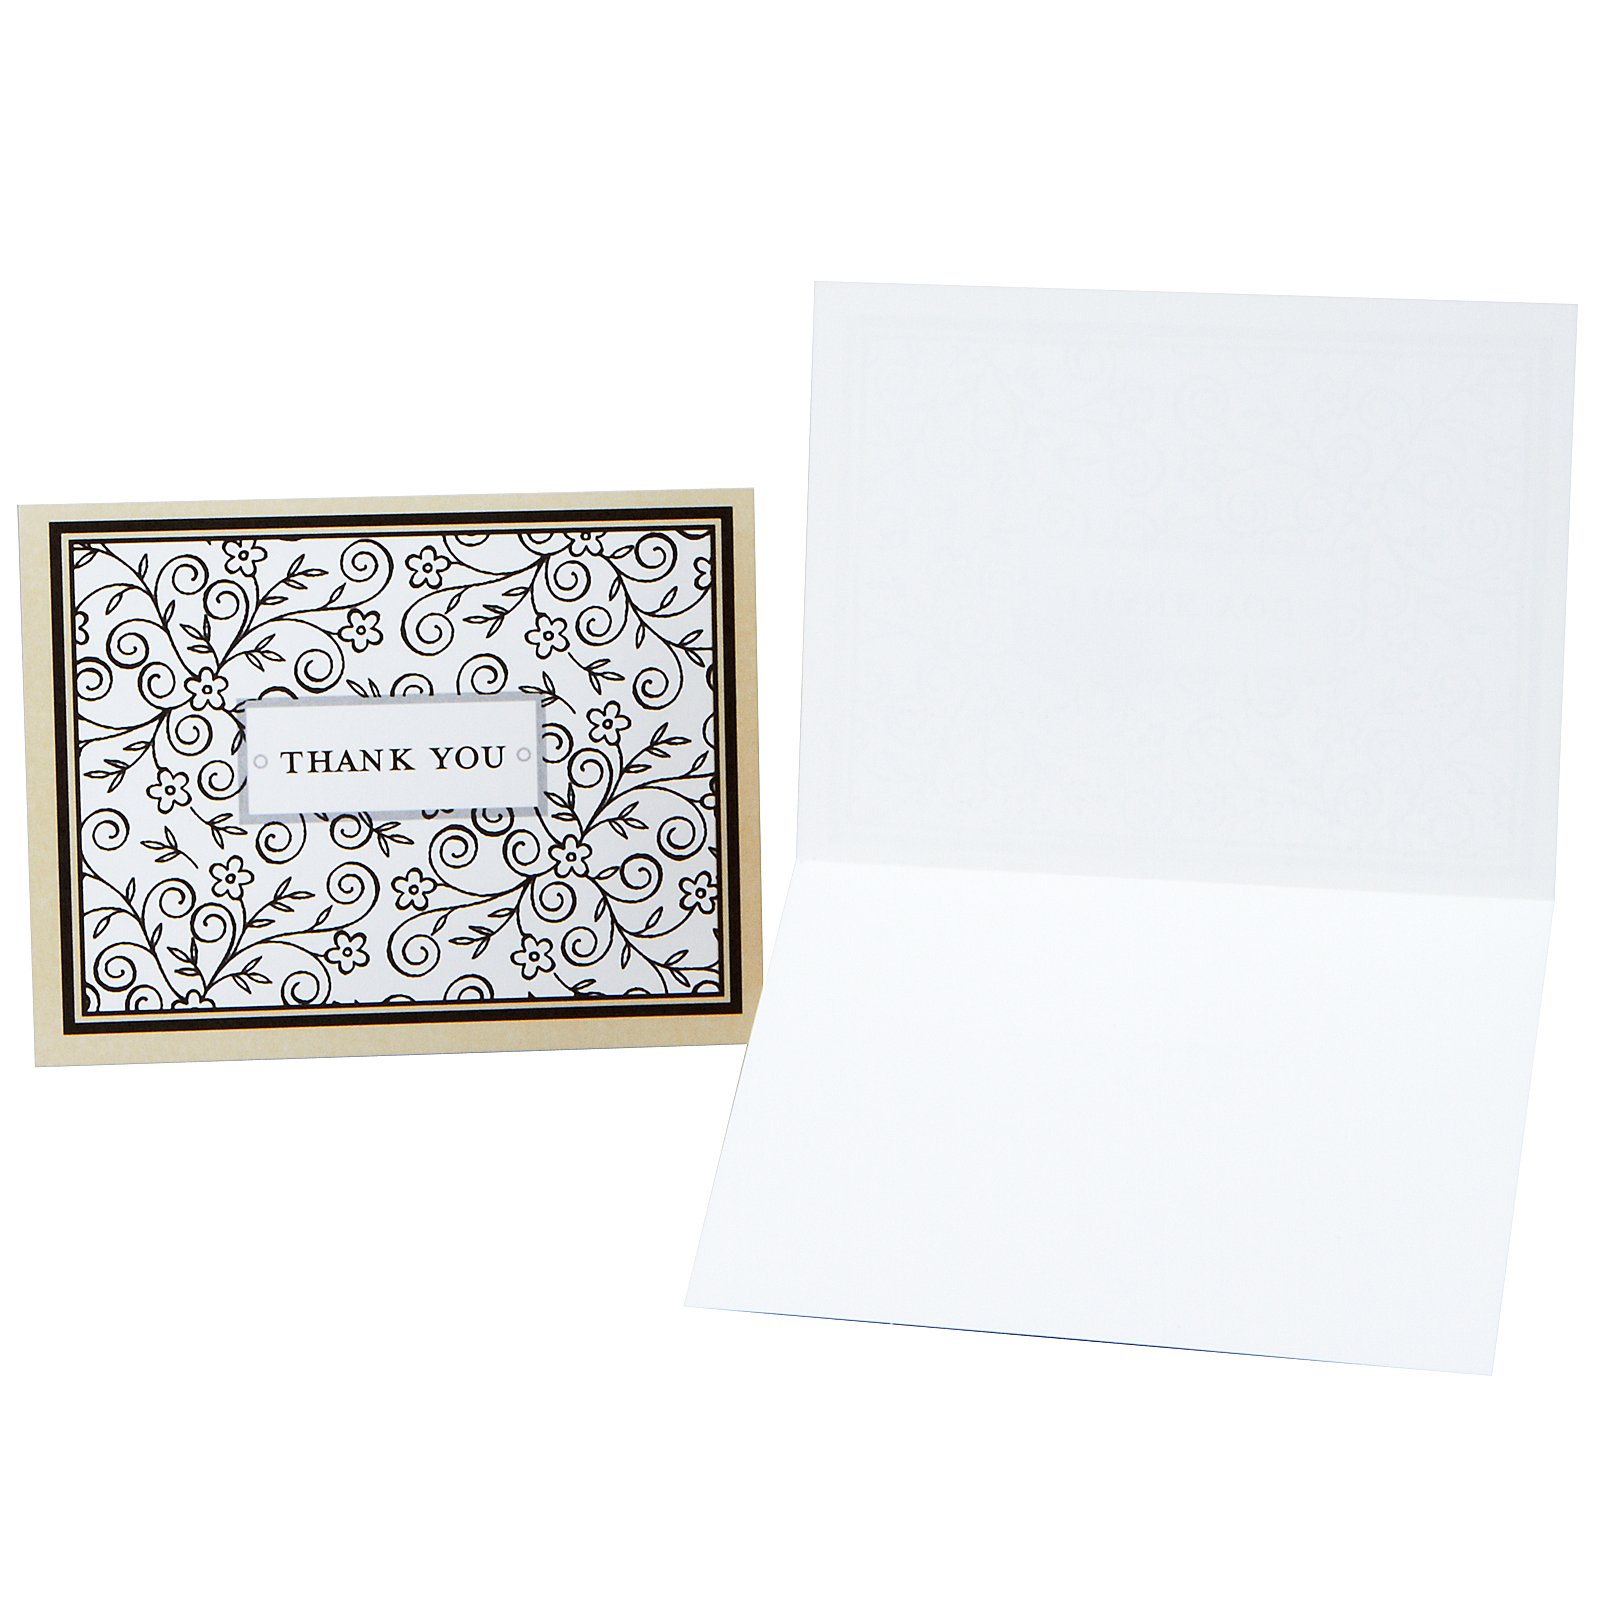 I Do Thank You Cards (8 count)